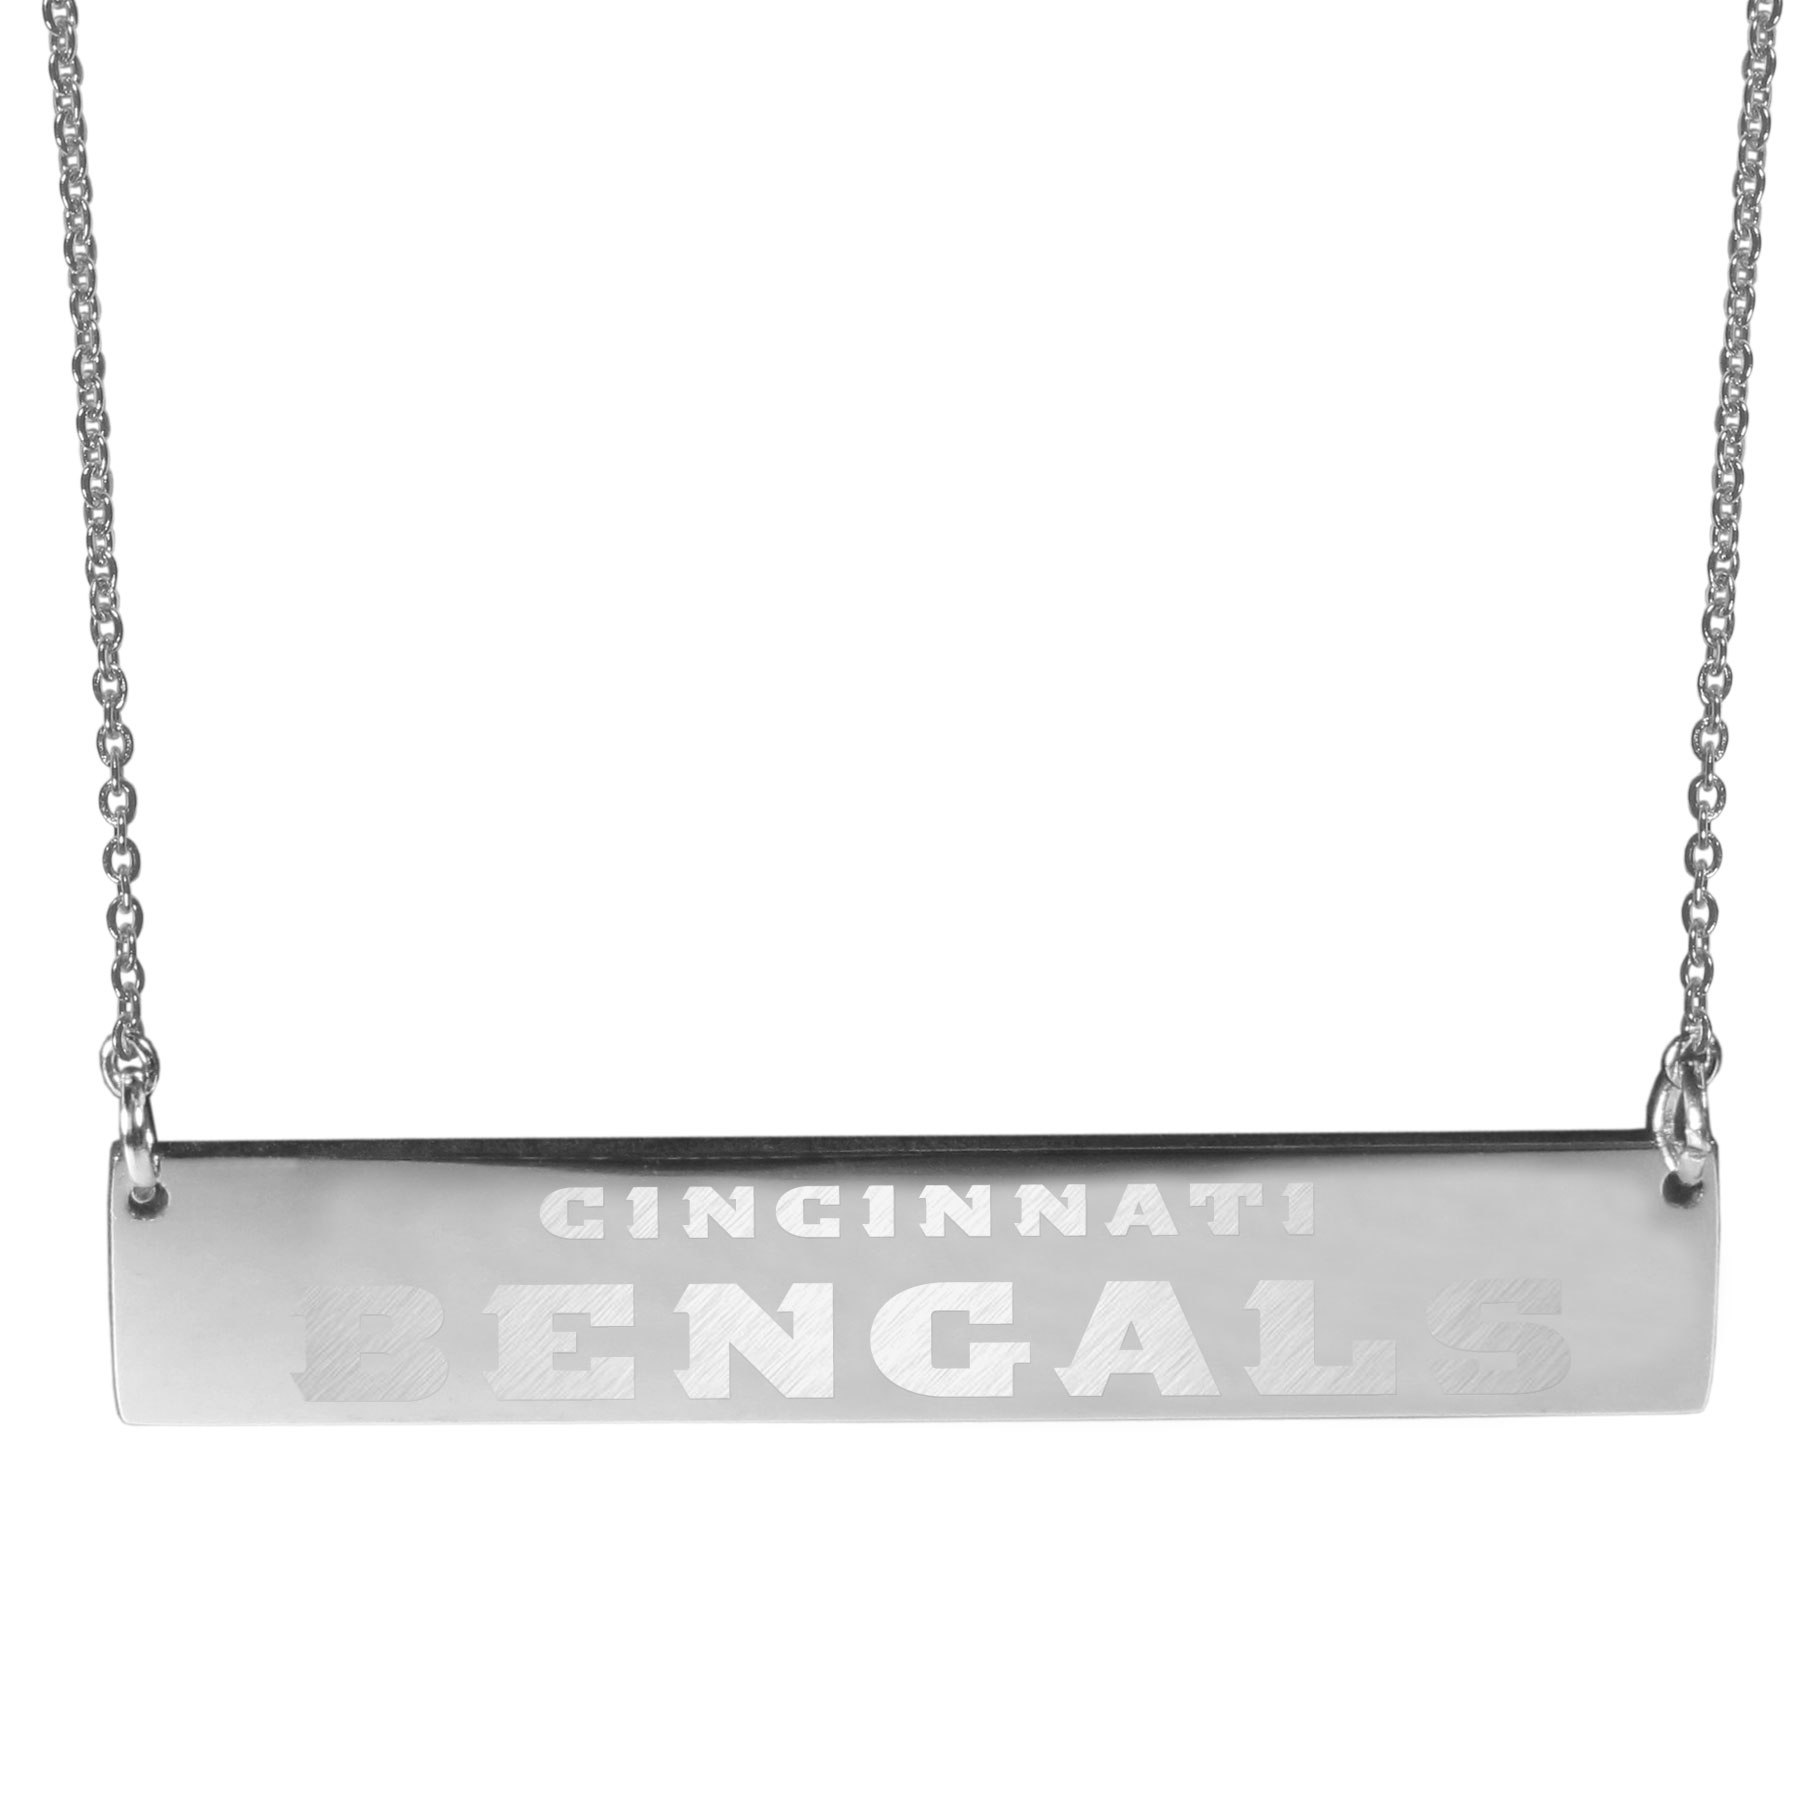 Cincinnati Bengals Bar Necklace - Simply beautiful Cincinnati Bengals bar necklace on a 20 inch link chain with 2 inch adjustable extender. This light-weight bar necklace has a stylish silver colored finish with the team name expertly etched on the 1.5 inch bar. Every female  fan will enjoy this contempory fashion accessory.